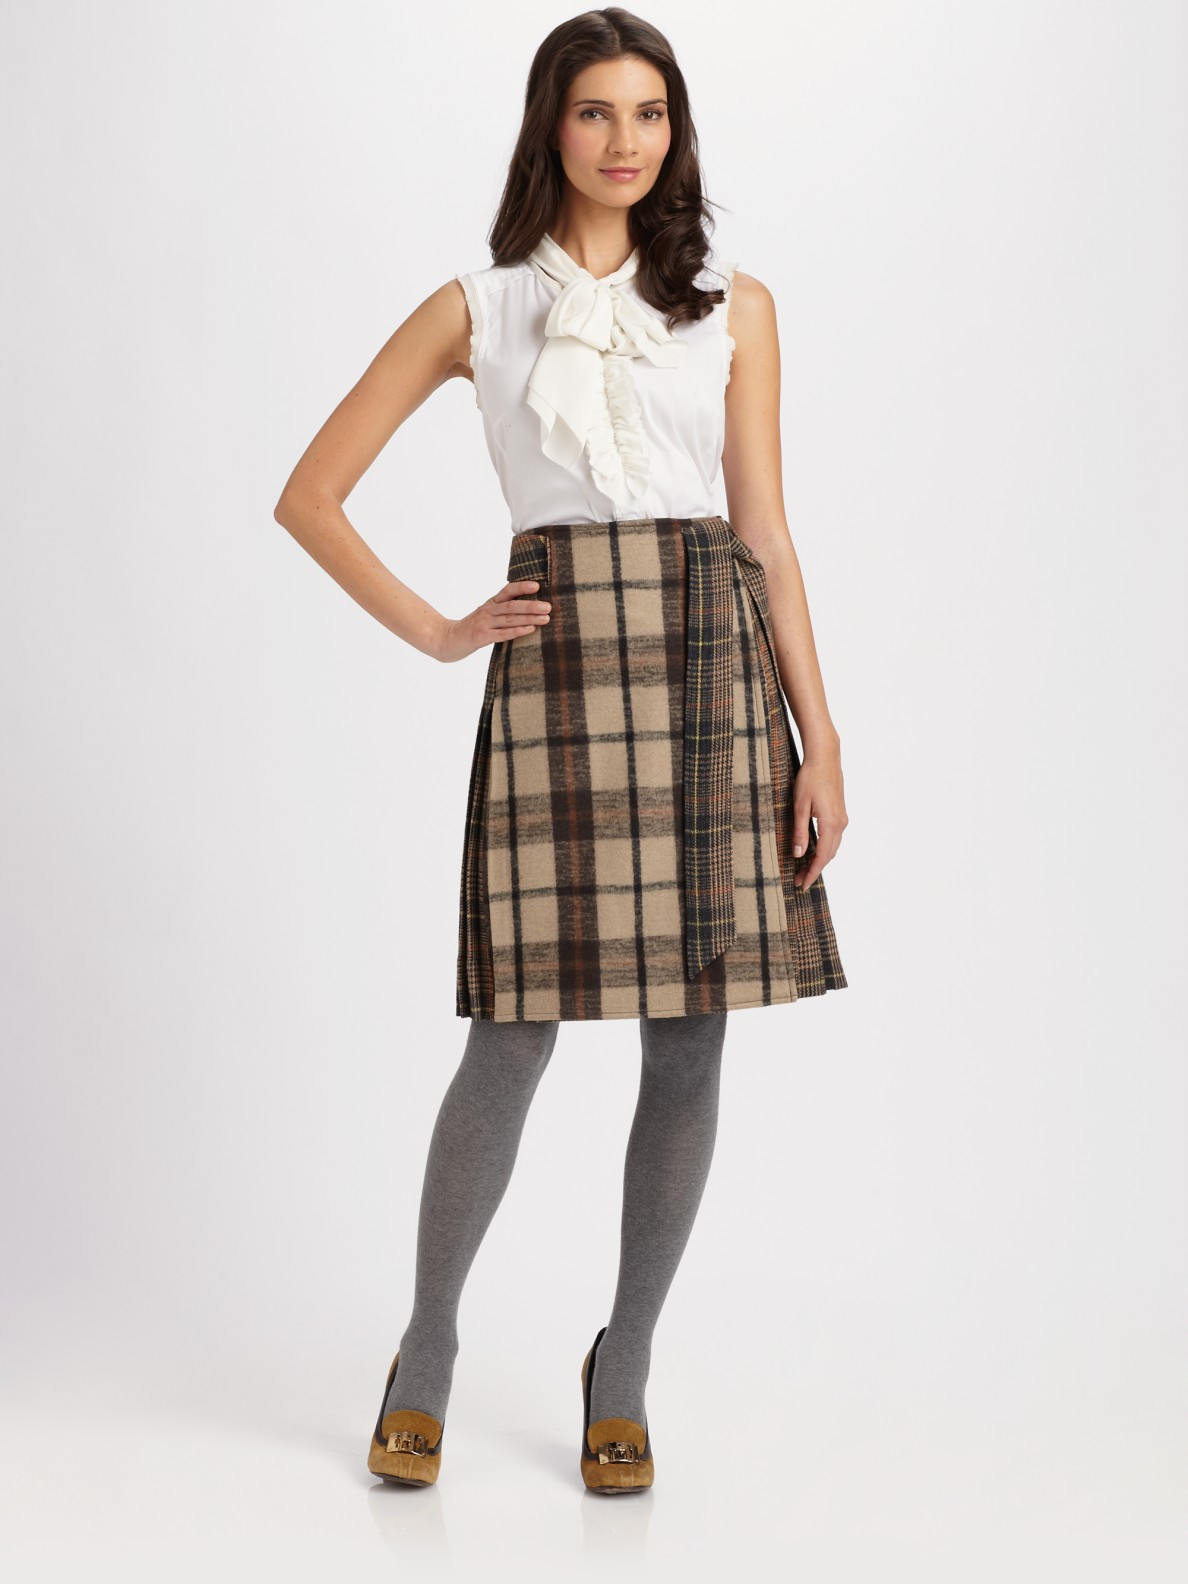 Plaid A Line Skirt - Dress Ala